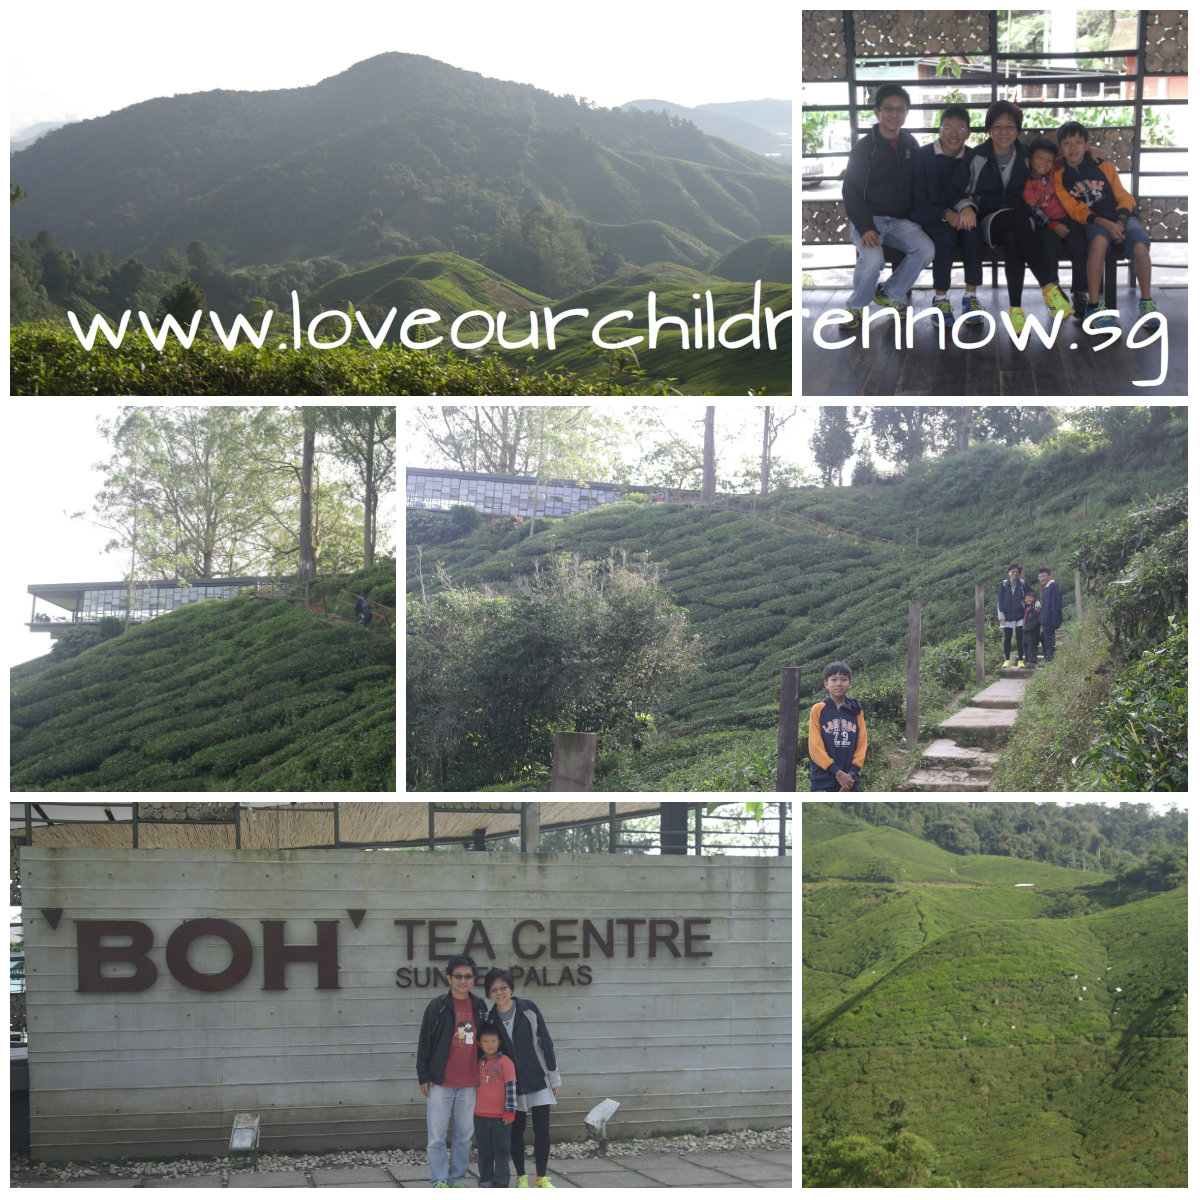 cameon-boh-tea-brinchang-views-people